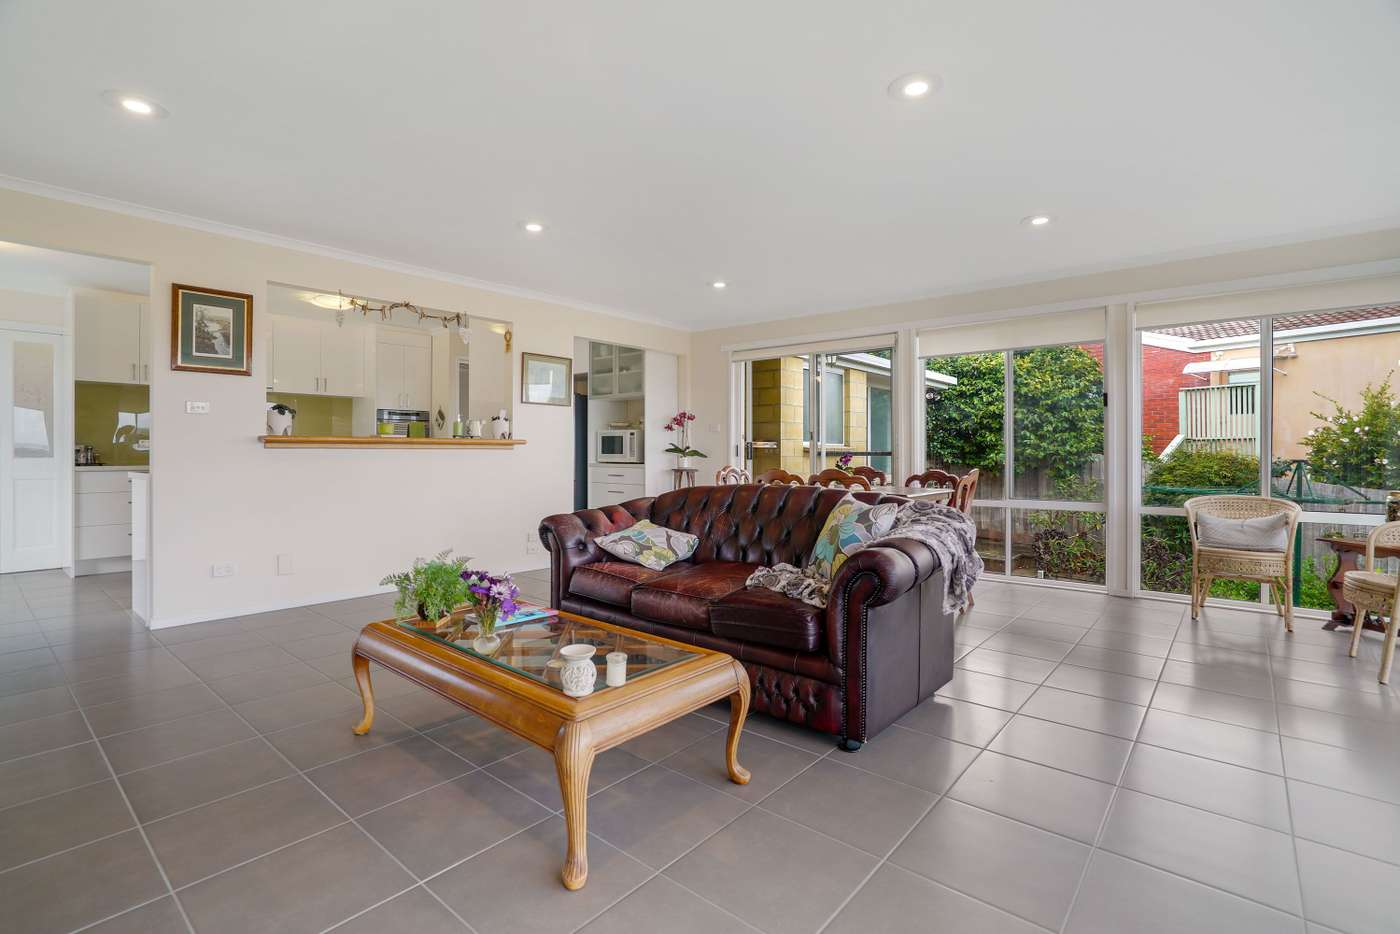 Sixth view of Homely house listing, 22 Calder Crescent, Blackmans Bay TAS 7052